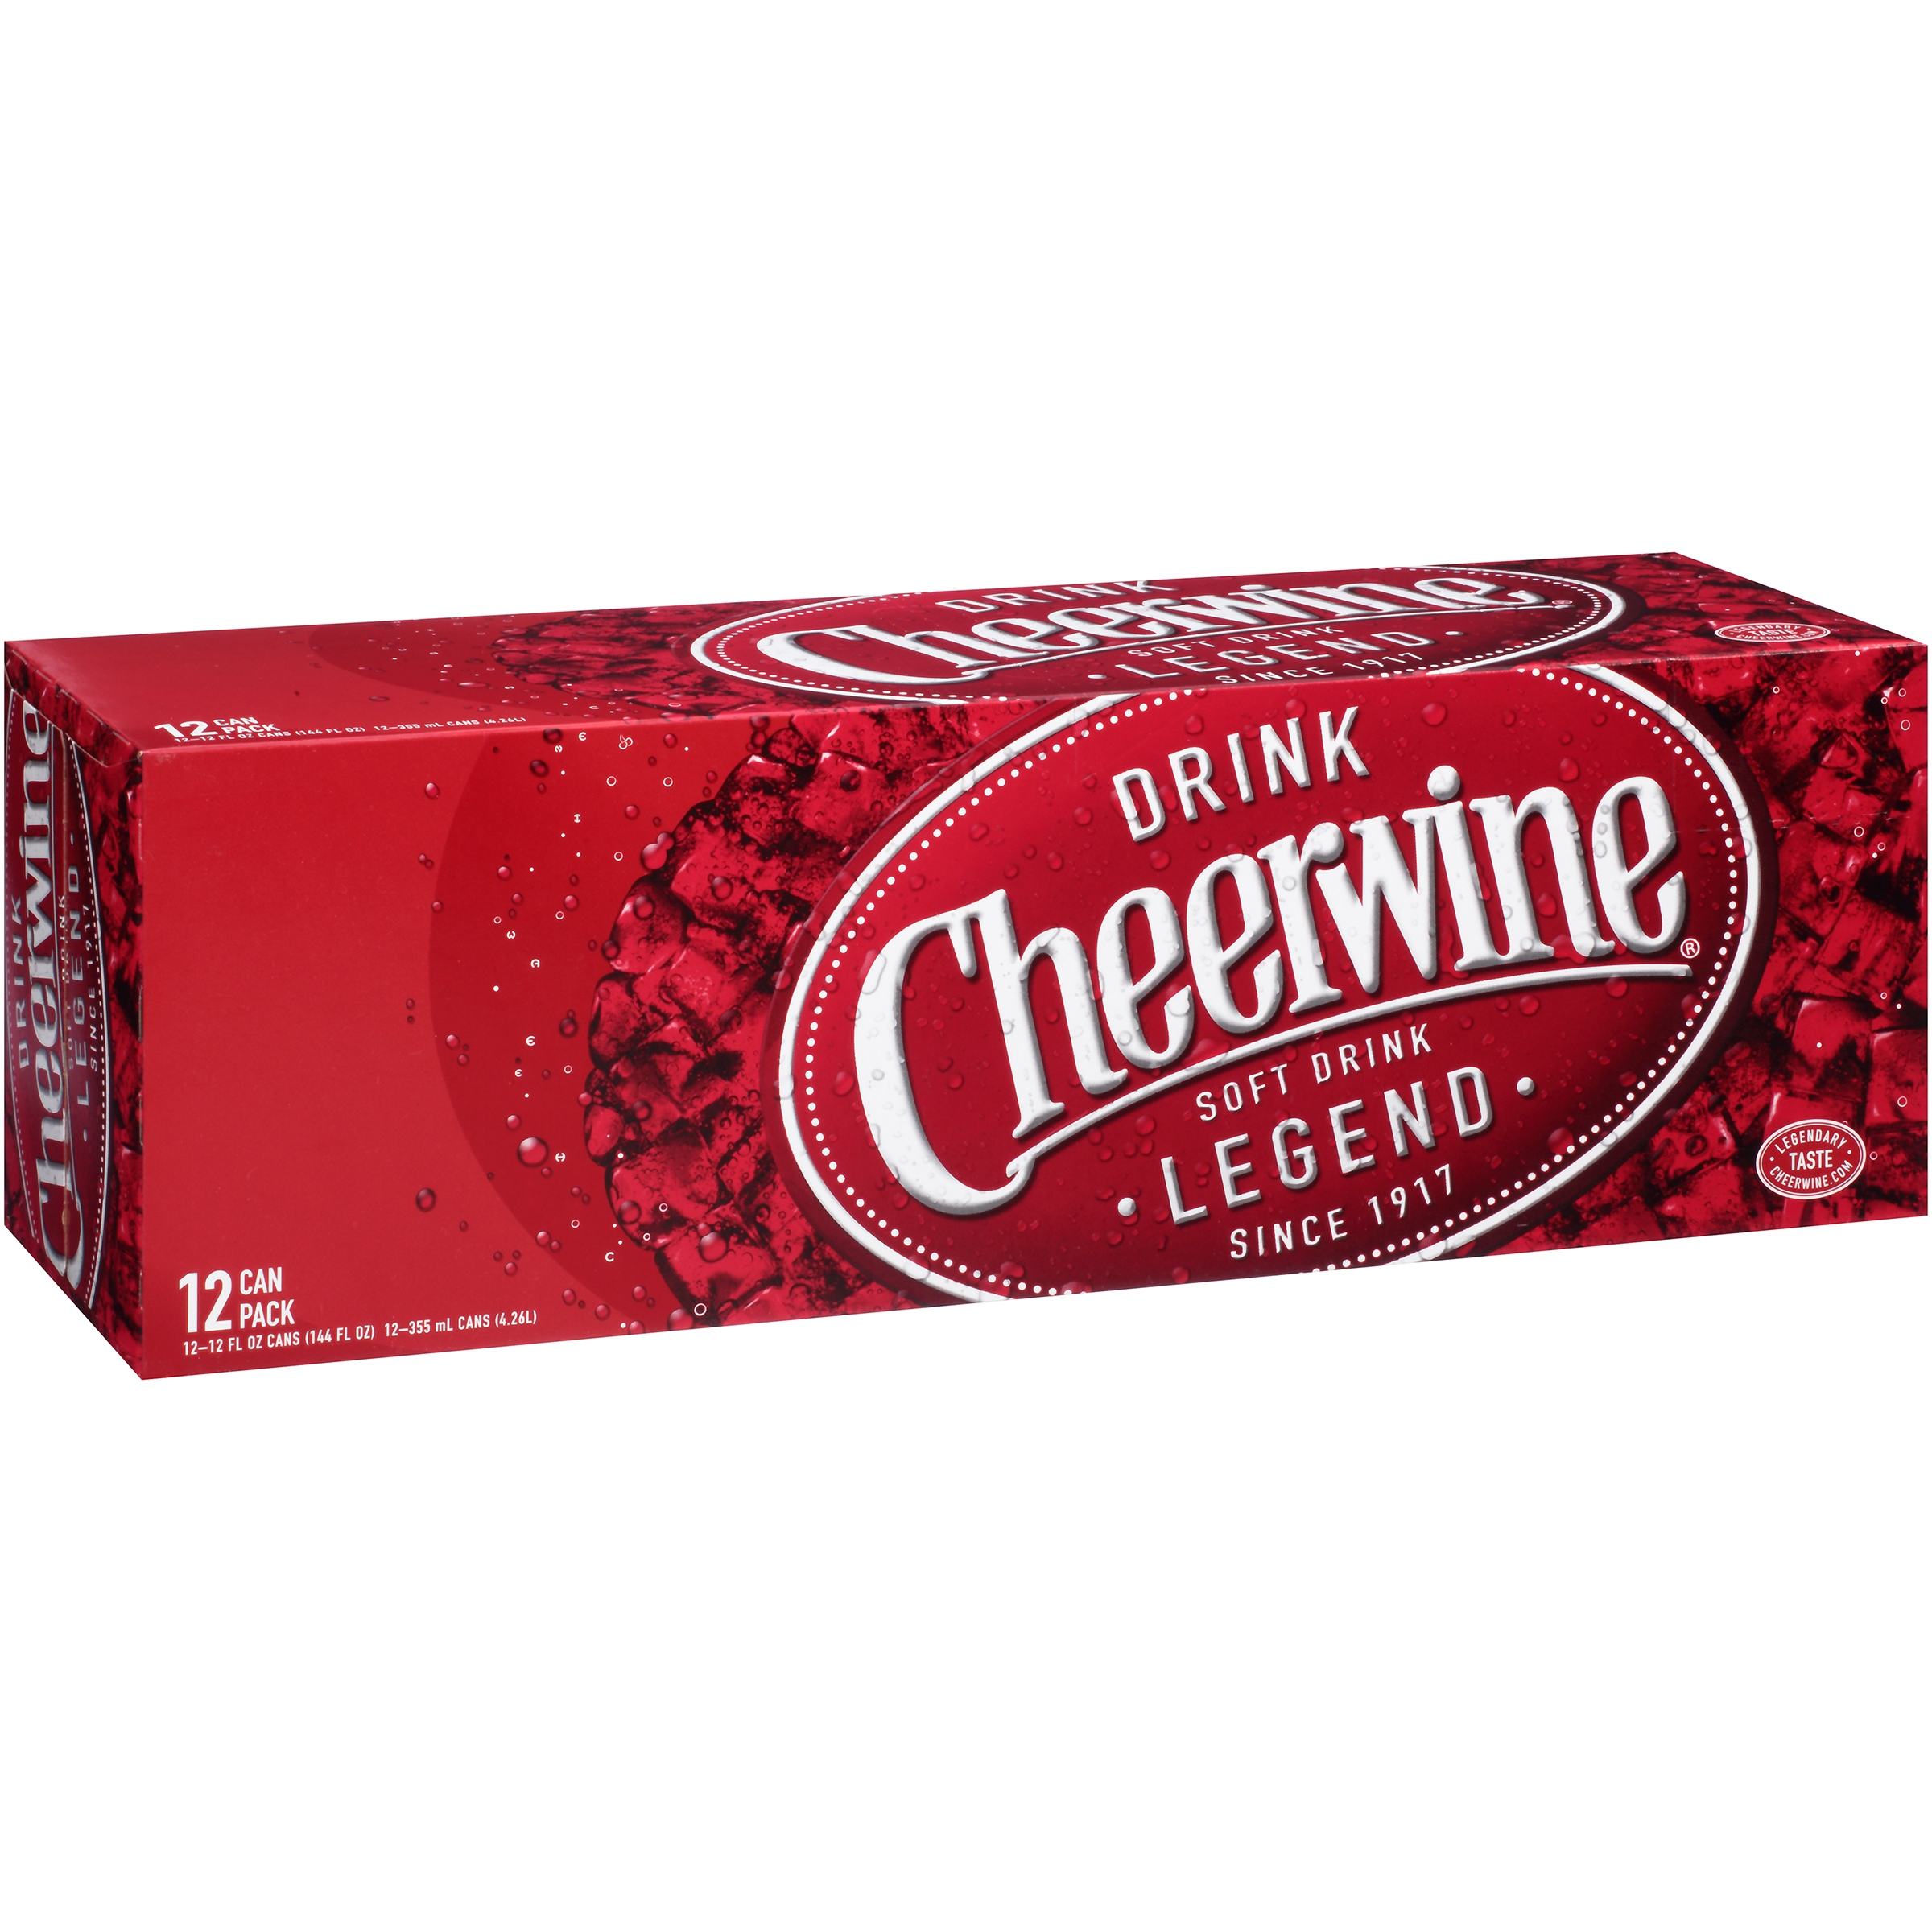 Cheerwine 12-pack cans